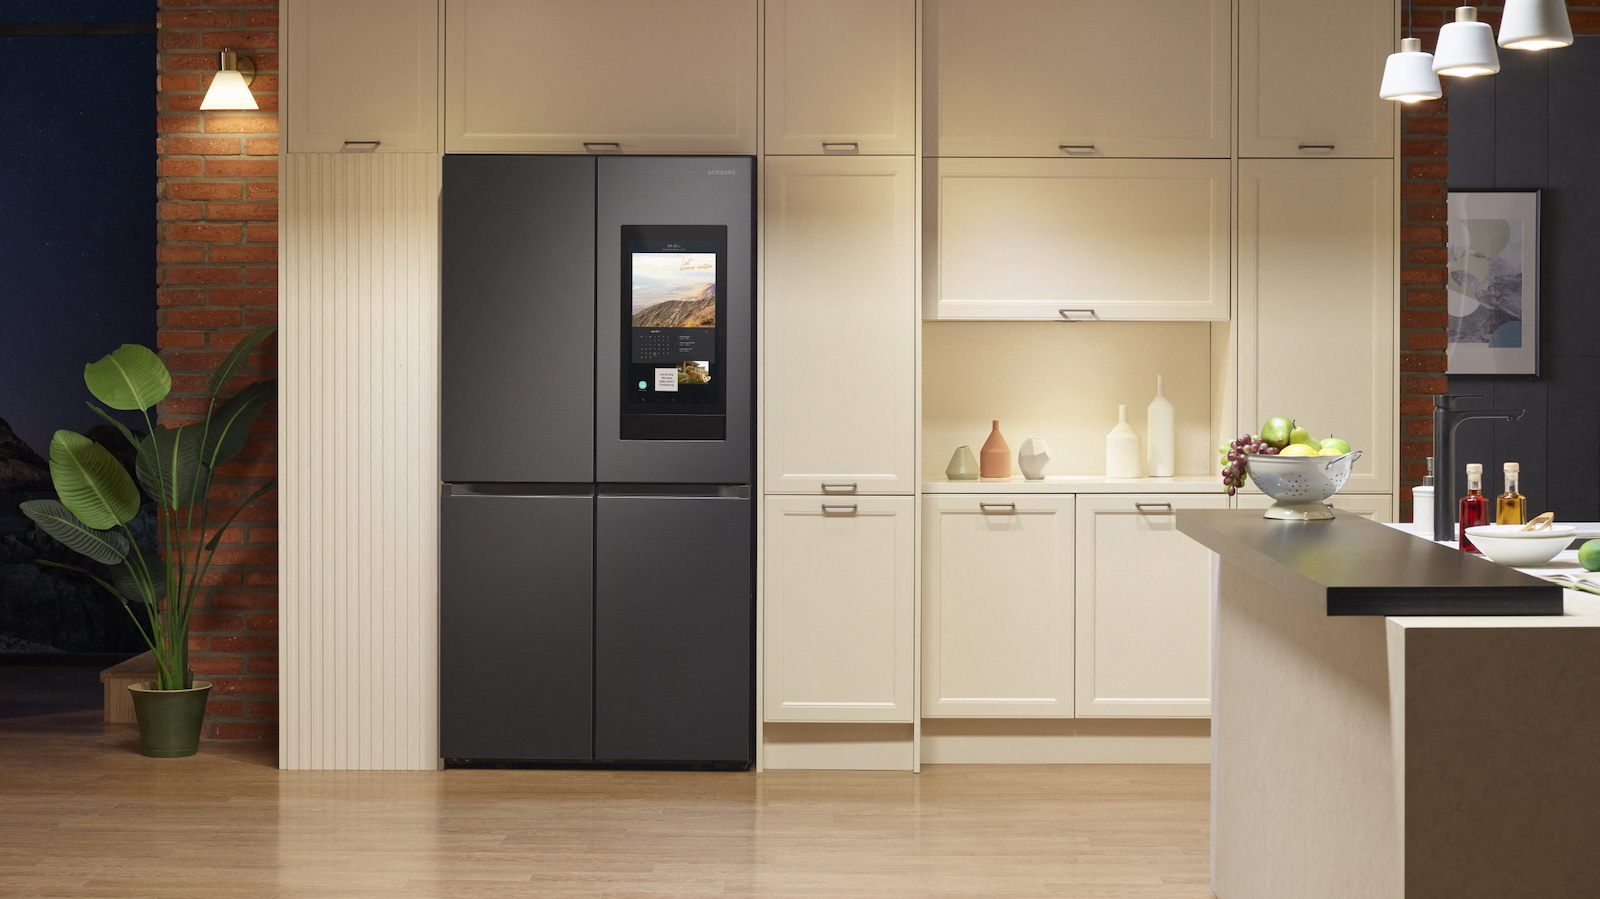 Samsung Family Hub 2021 smart refrigerator series has an upgraded SmartThings widget